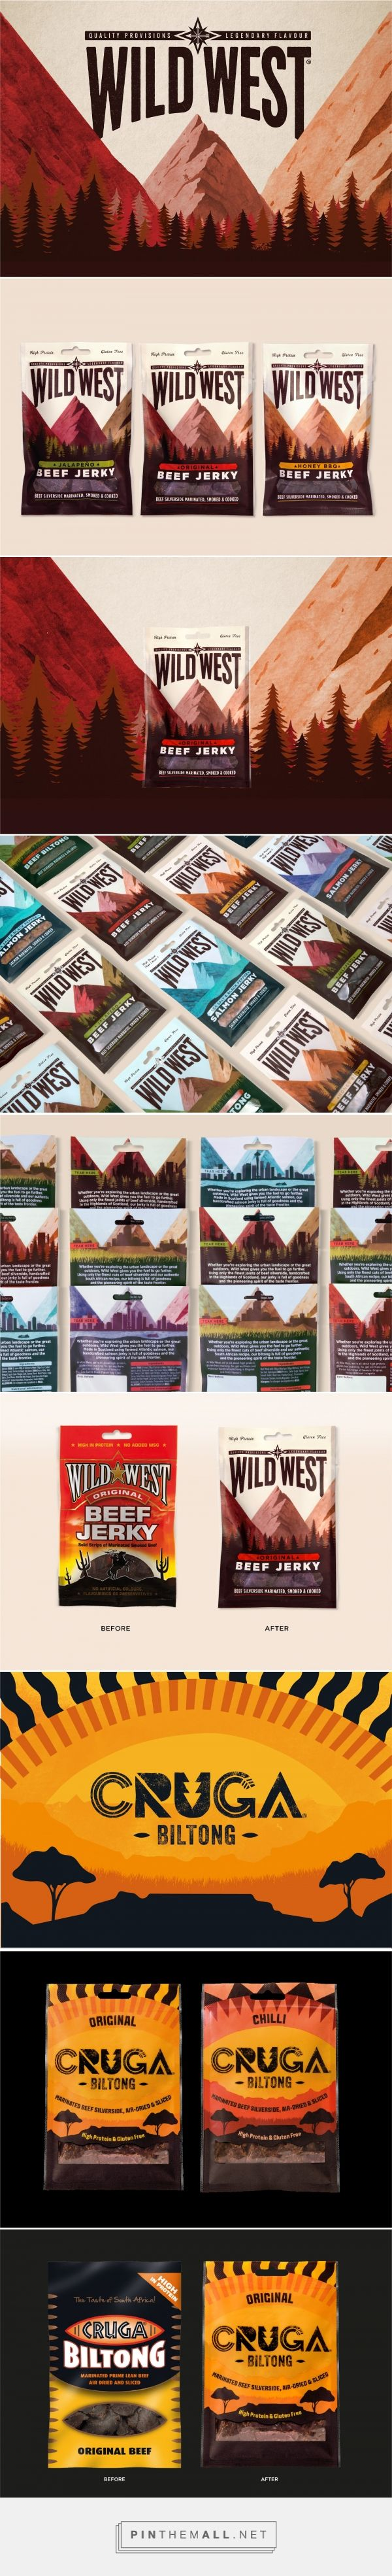 Before & After - Meatsnacks Cruga and Wild West packaging design by Pearlfisher. - http://www.packagingoftheworld.com/2017/11/meatsnacks-cruga-and-wild-west.html